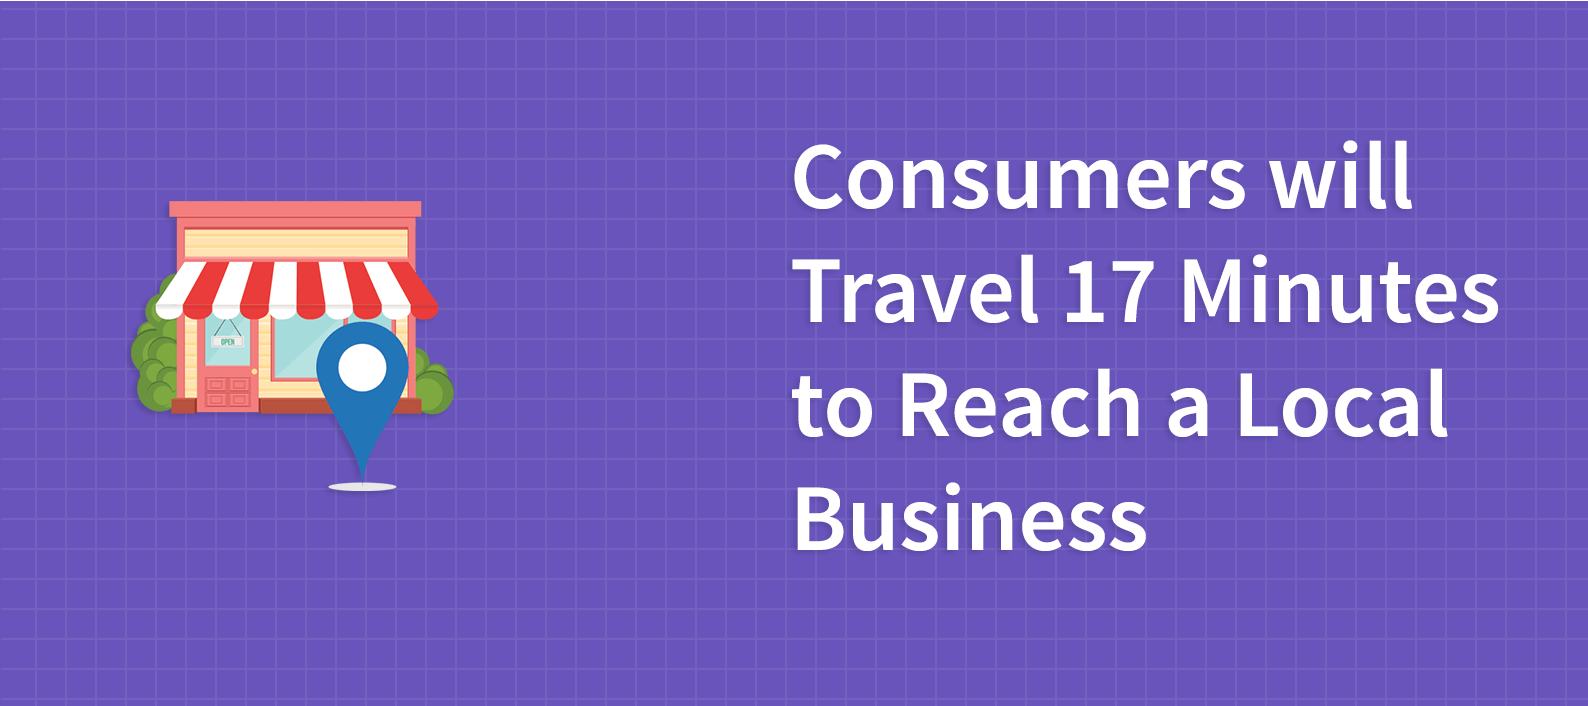 Consumers will Travel 17 Minutes to Reach a Local Business